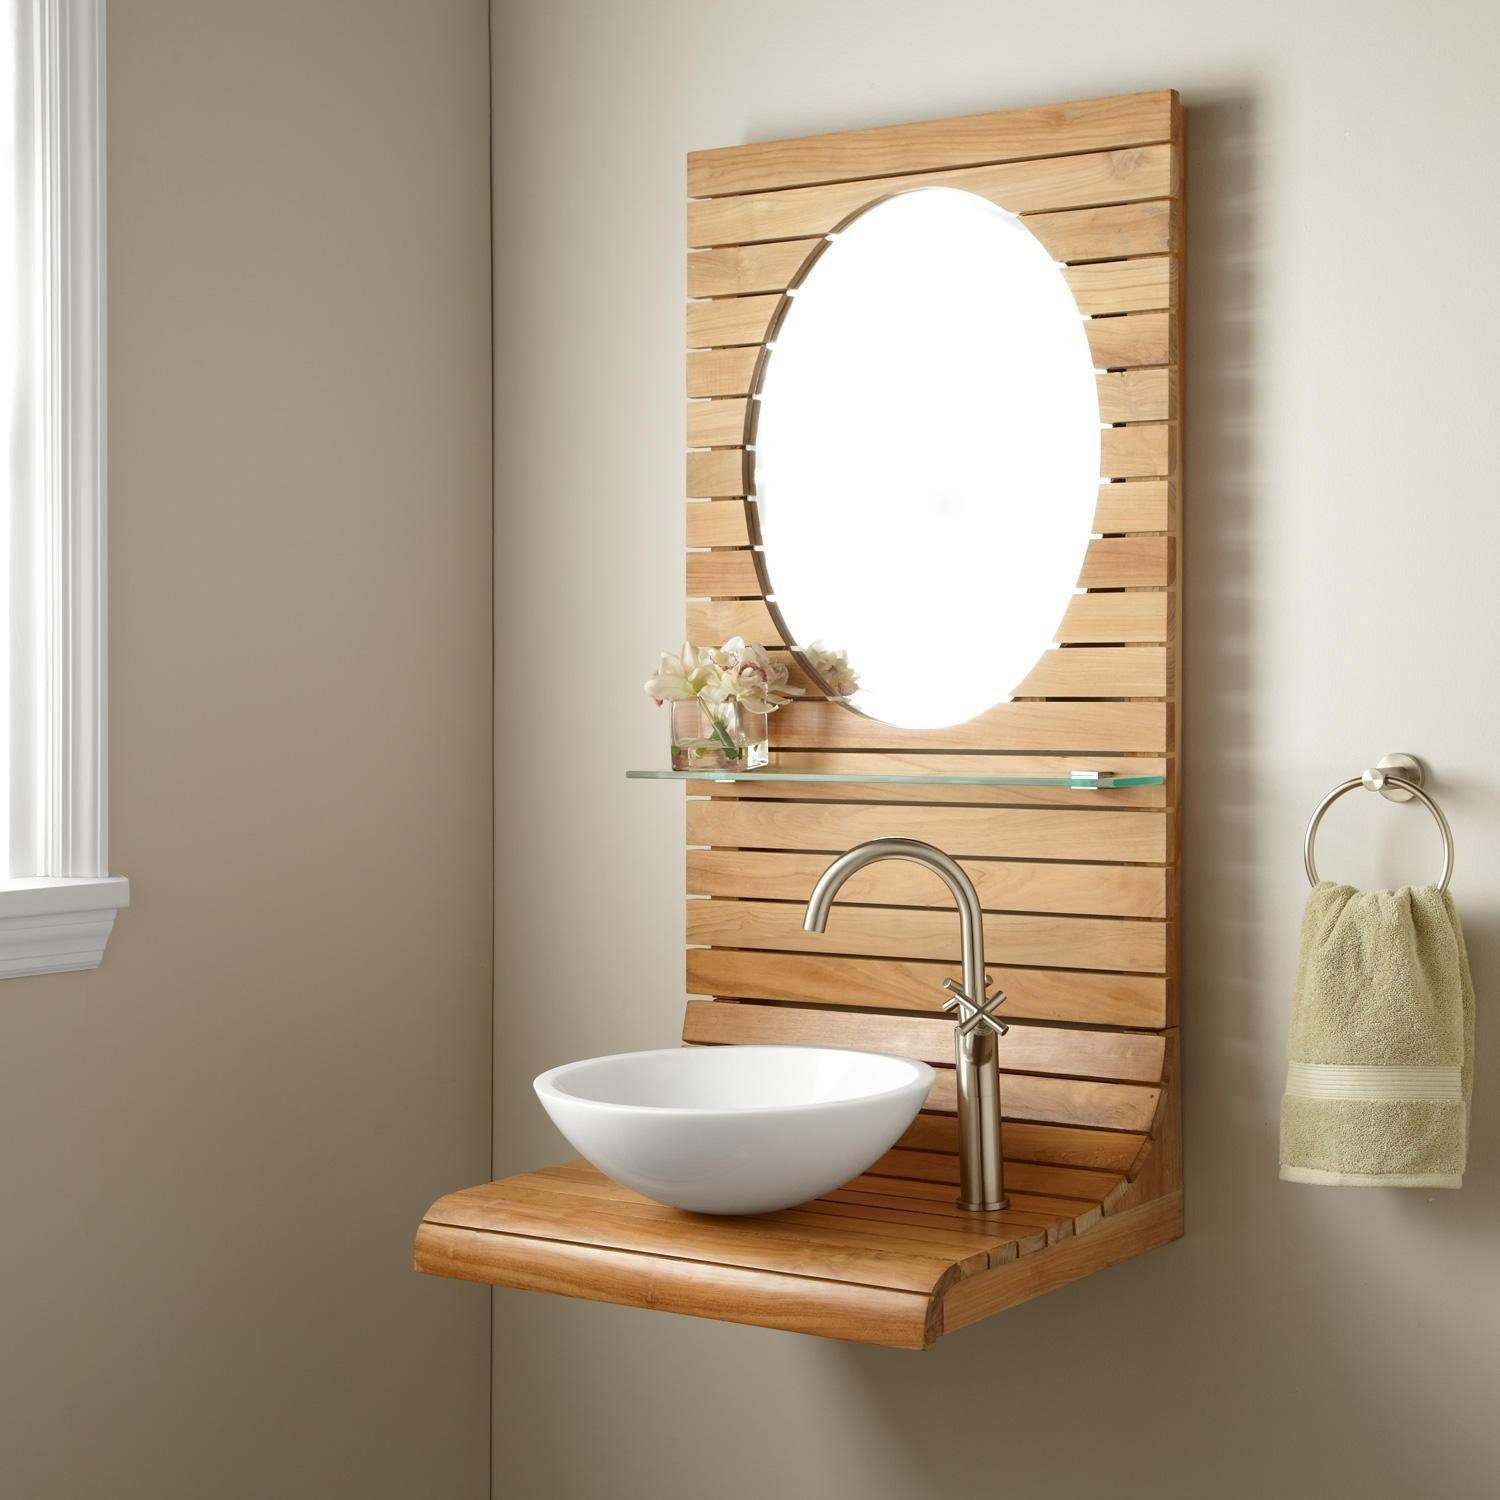 Bathroom Cabinets : Wall Mounted Bathroom Cabinet Commercial With Commercial Bathroom Mirrors (Image 9 of 20)